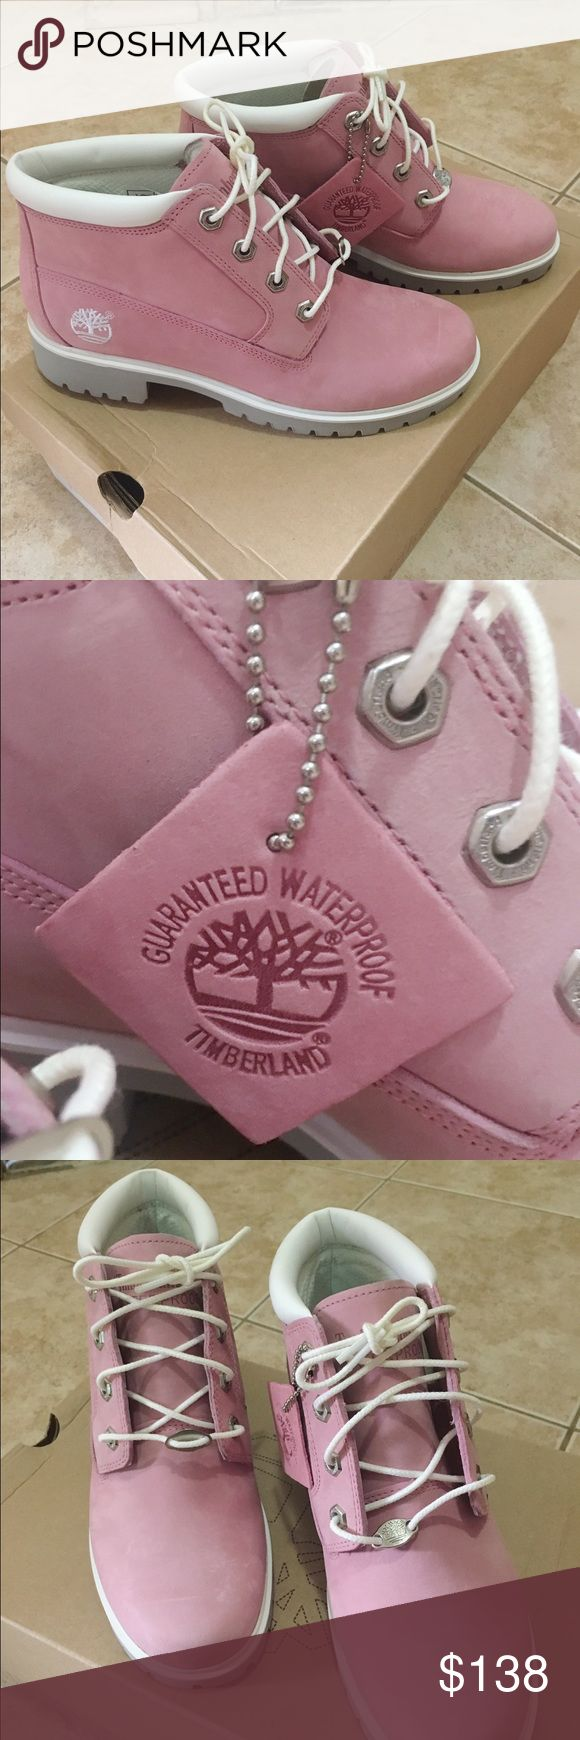 Timberland Nellie Pink SIze7.5 ( New With Box) Timberland's comfy, colorful, customer-favorite Nellie boots are the perfect blend of rugged and feminine.                                            Ready to be styled with everything from skirts to ripped jeans, we wear these waterproof boots year-round. Premium full-grain waterproof leather uppersDirect-attach, seam-sealed waterproof constructionExclusive anti-fatigue midsole and removable footbedsBreathable mesh linings and footbed…